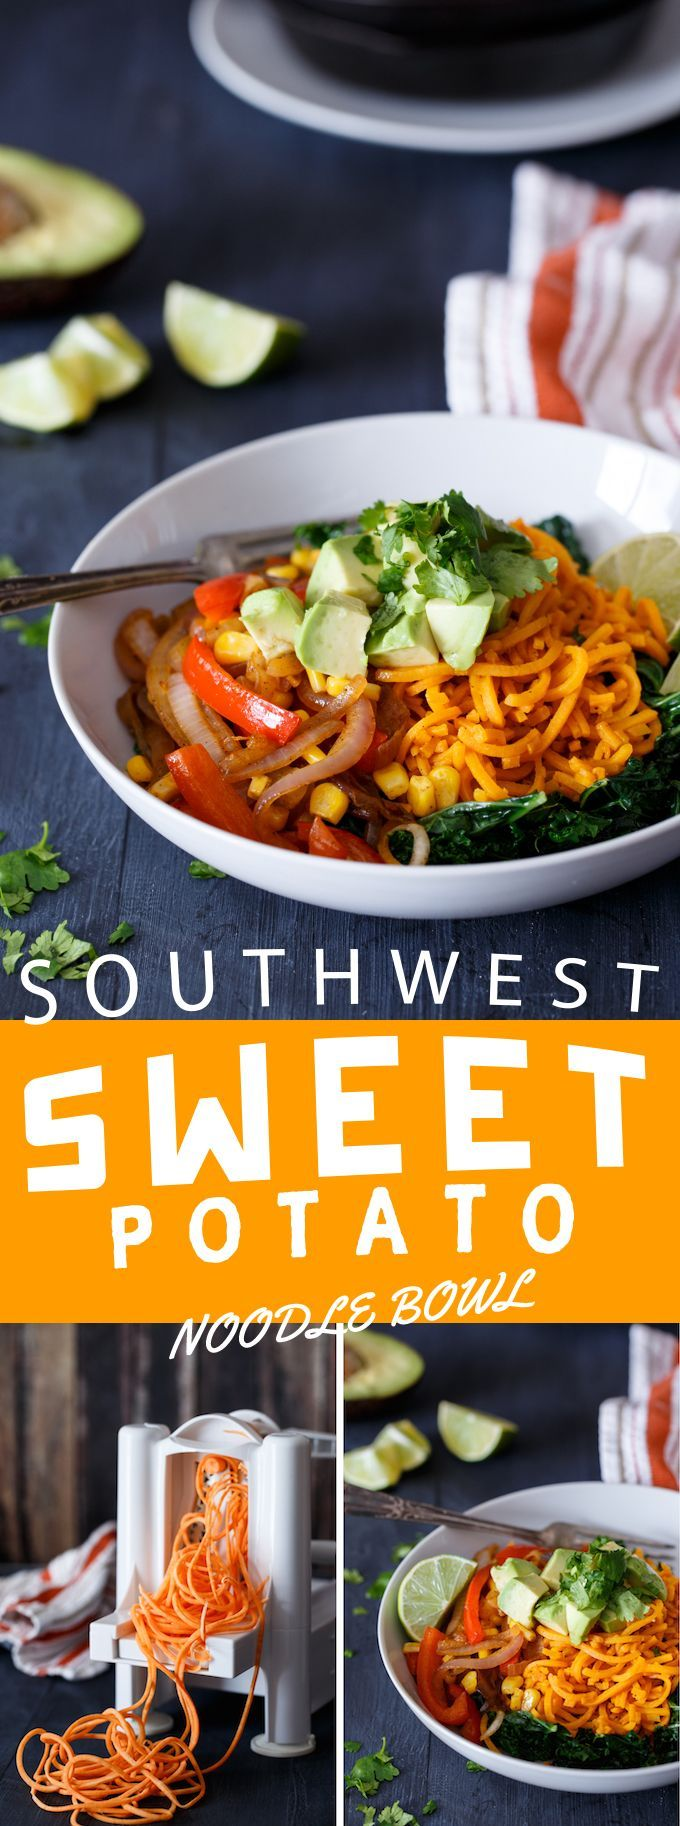 SOUTHWEST SWEET POTATO NOODLE BOWL - A great way to use a spiralizer in a easy to make recipe.